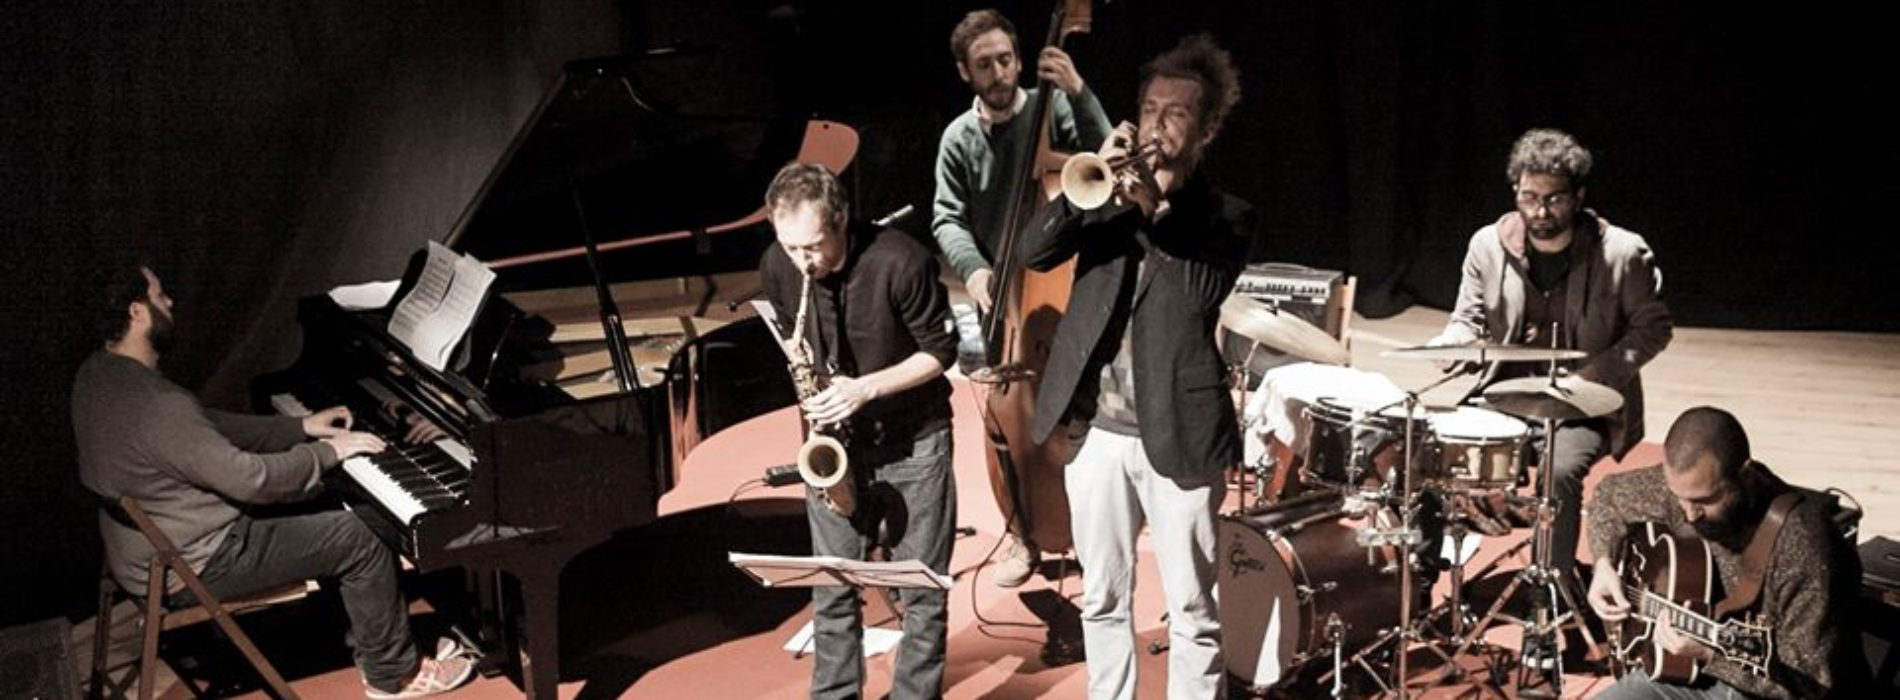 The best jazz clubs in Rome: seven spots for music lovers